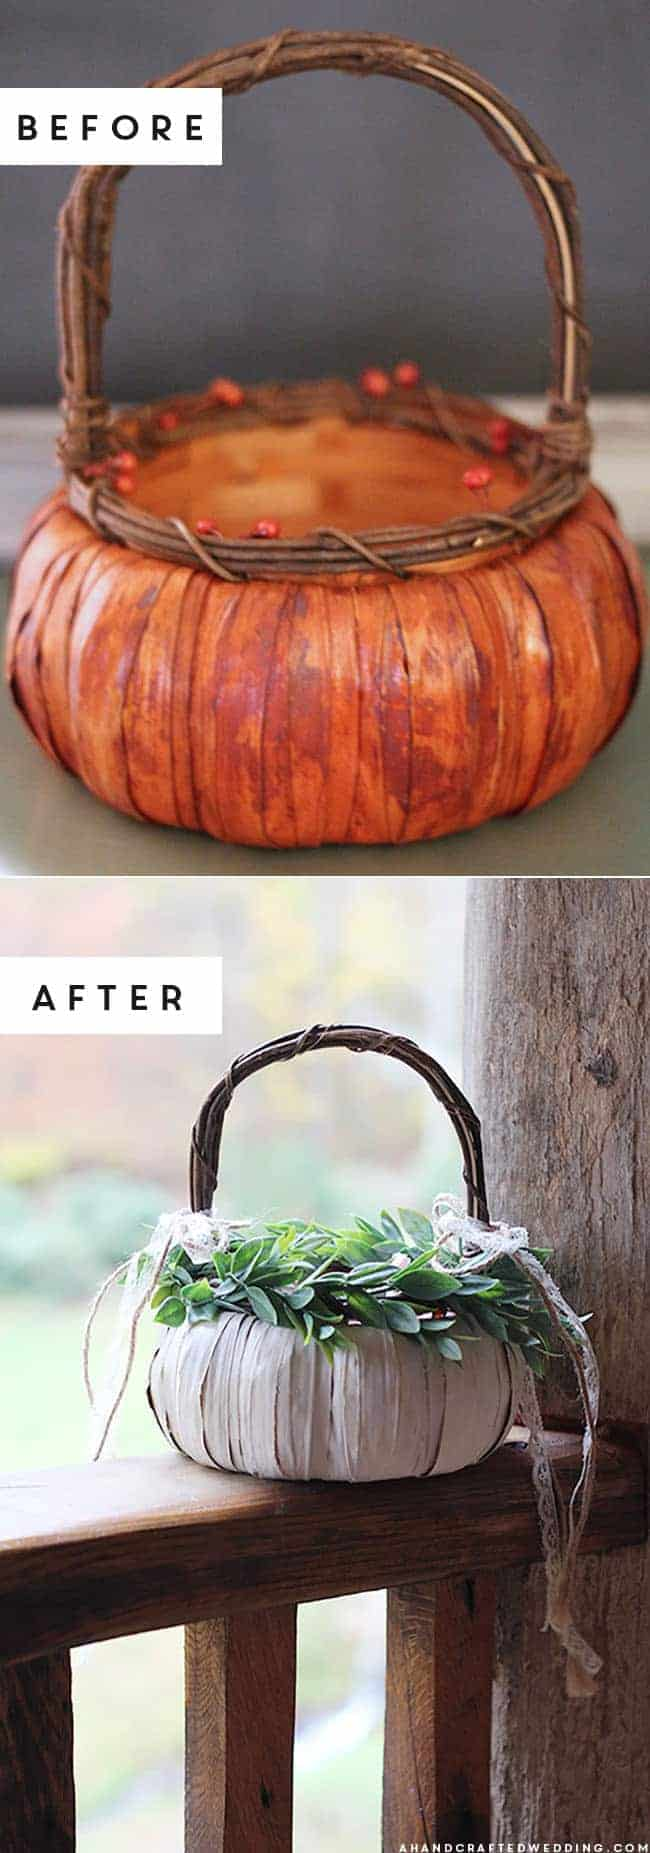 Planning a fall wedding? Add a whimsical touch with this DIY pumpkin flower girl basket! MountainModernLife.com